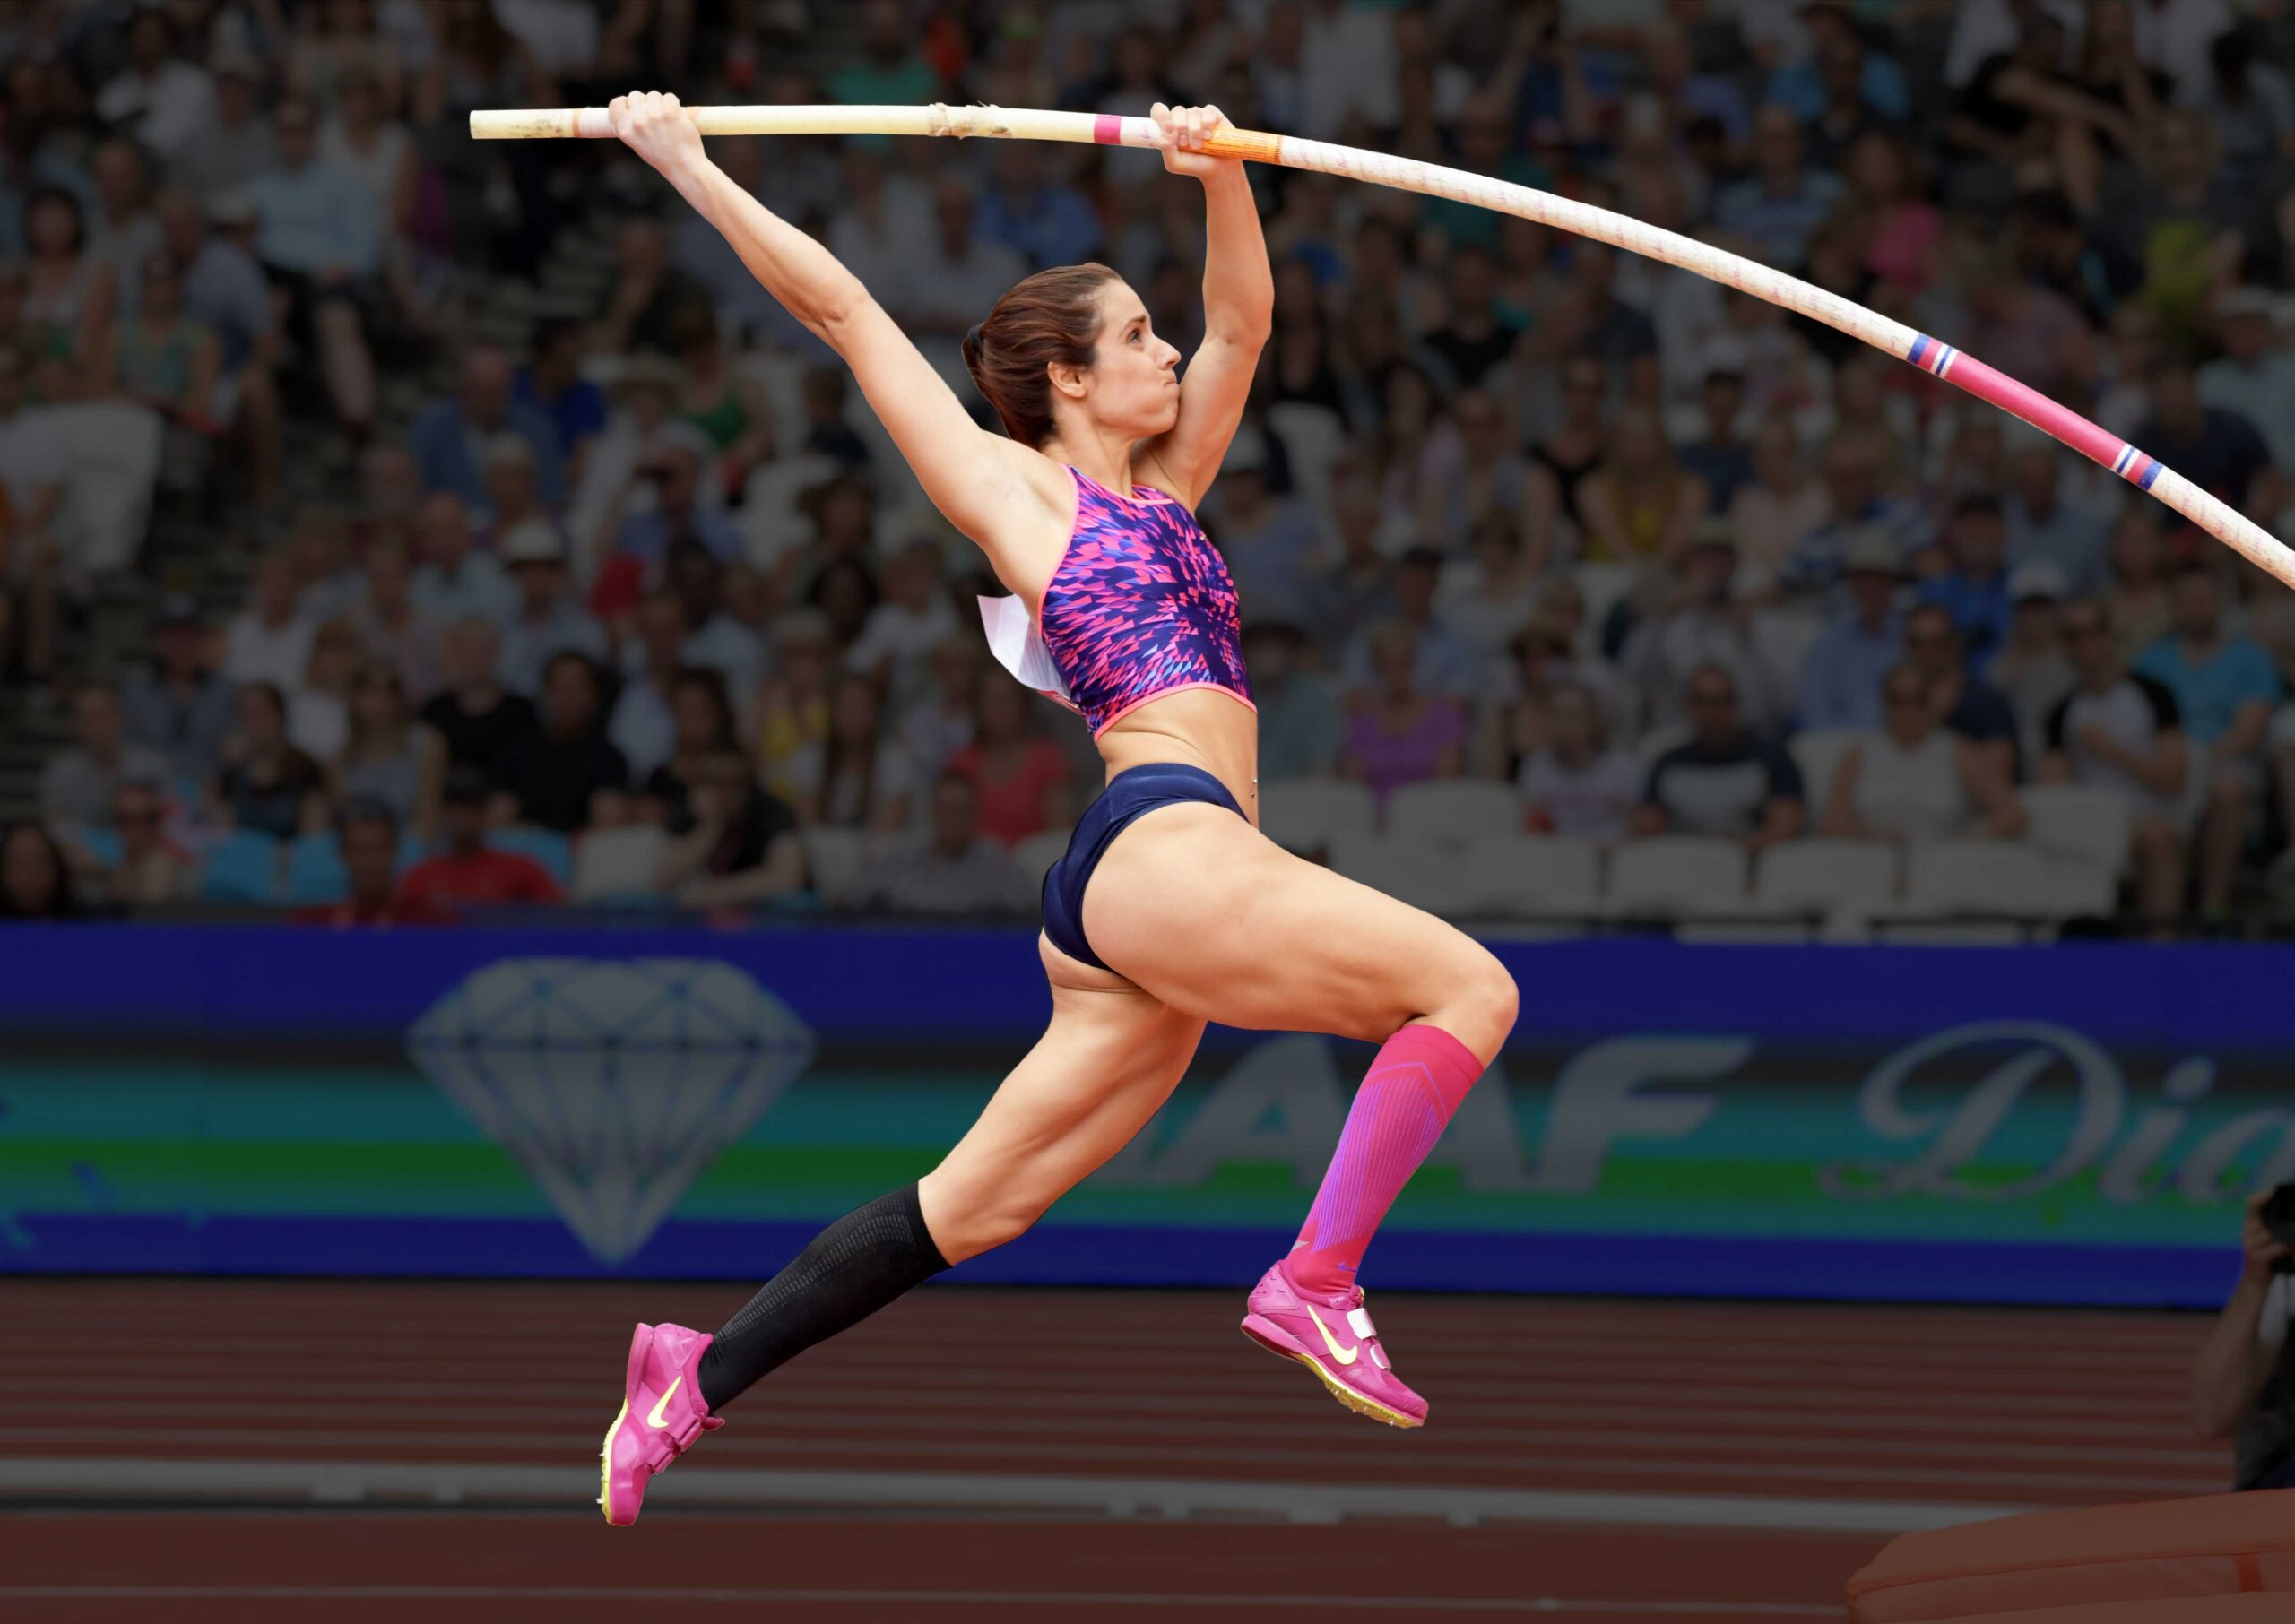 Greek National Pole Vault Record Holder and Olympic Champion vaulting with Spirit Vaulting Poles